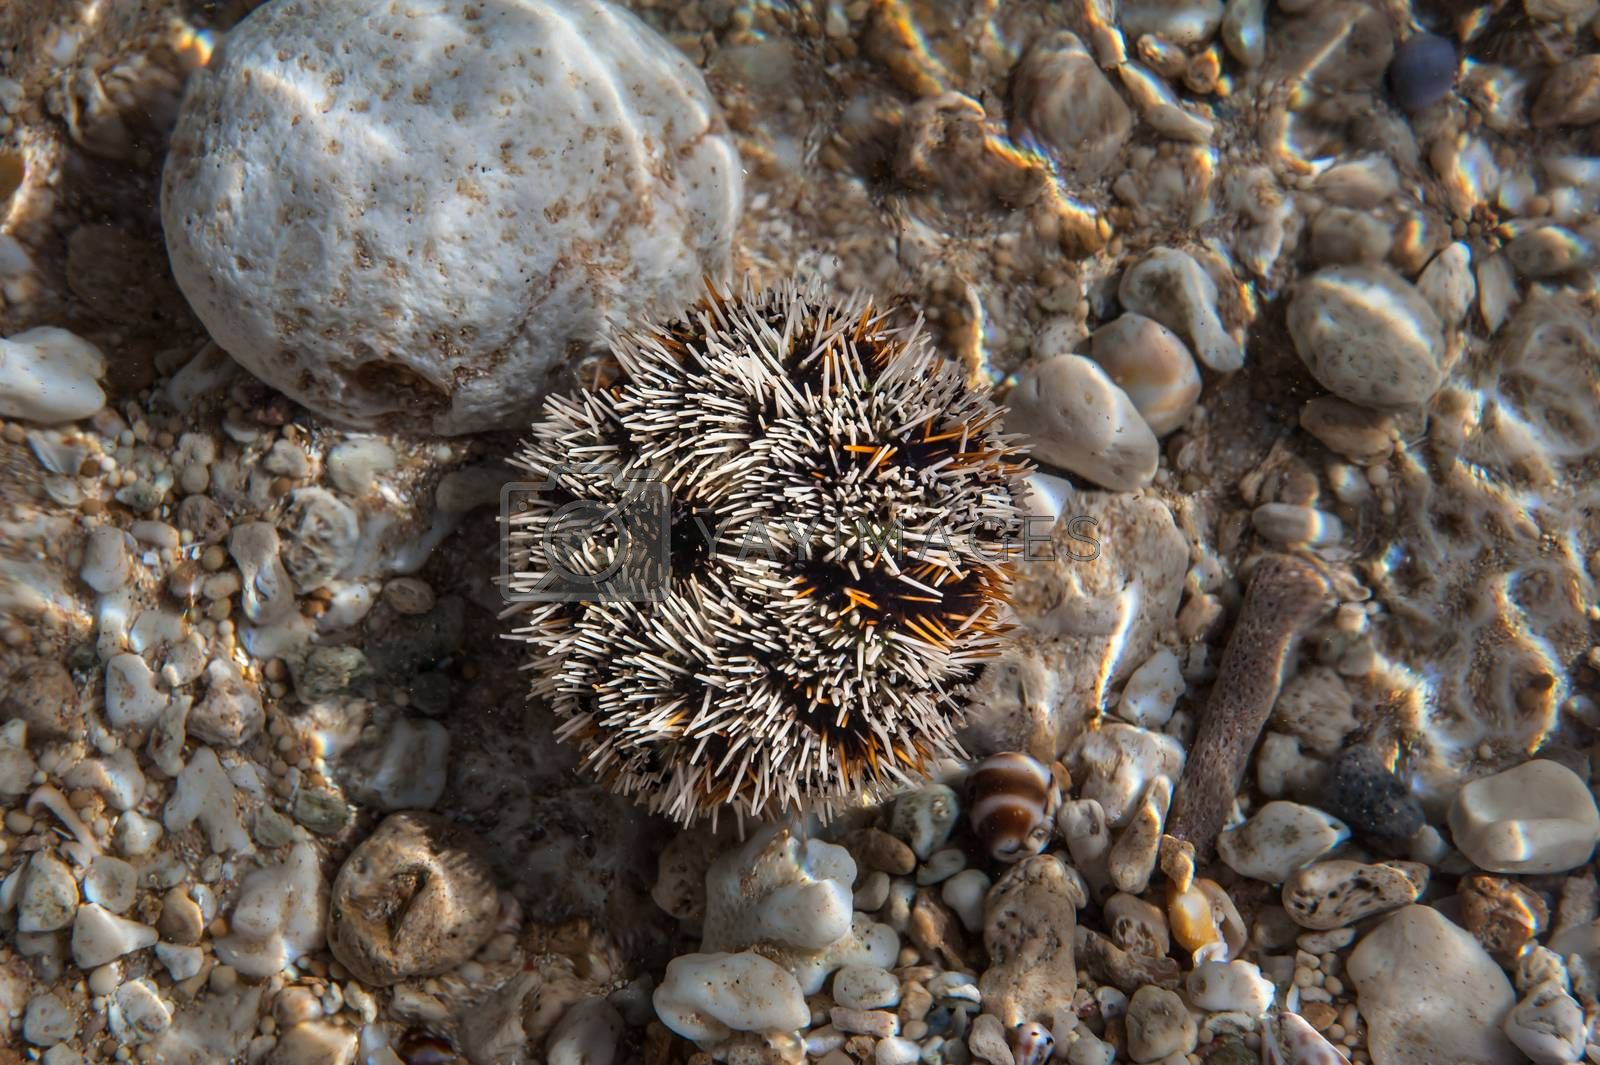 Sea urchin with his needles being ready to defend. White and yellow colored, lying on the stone, under water.